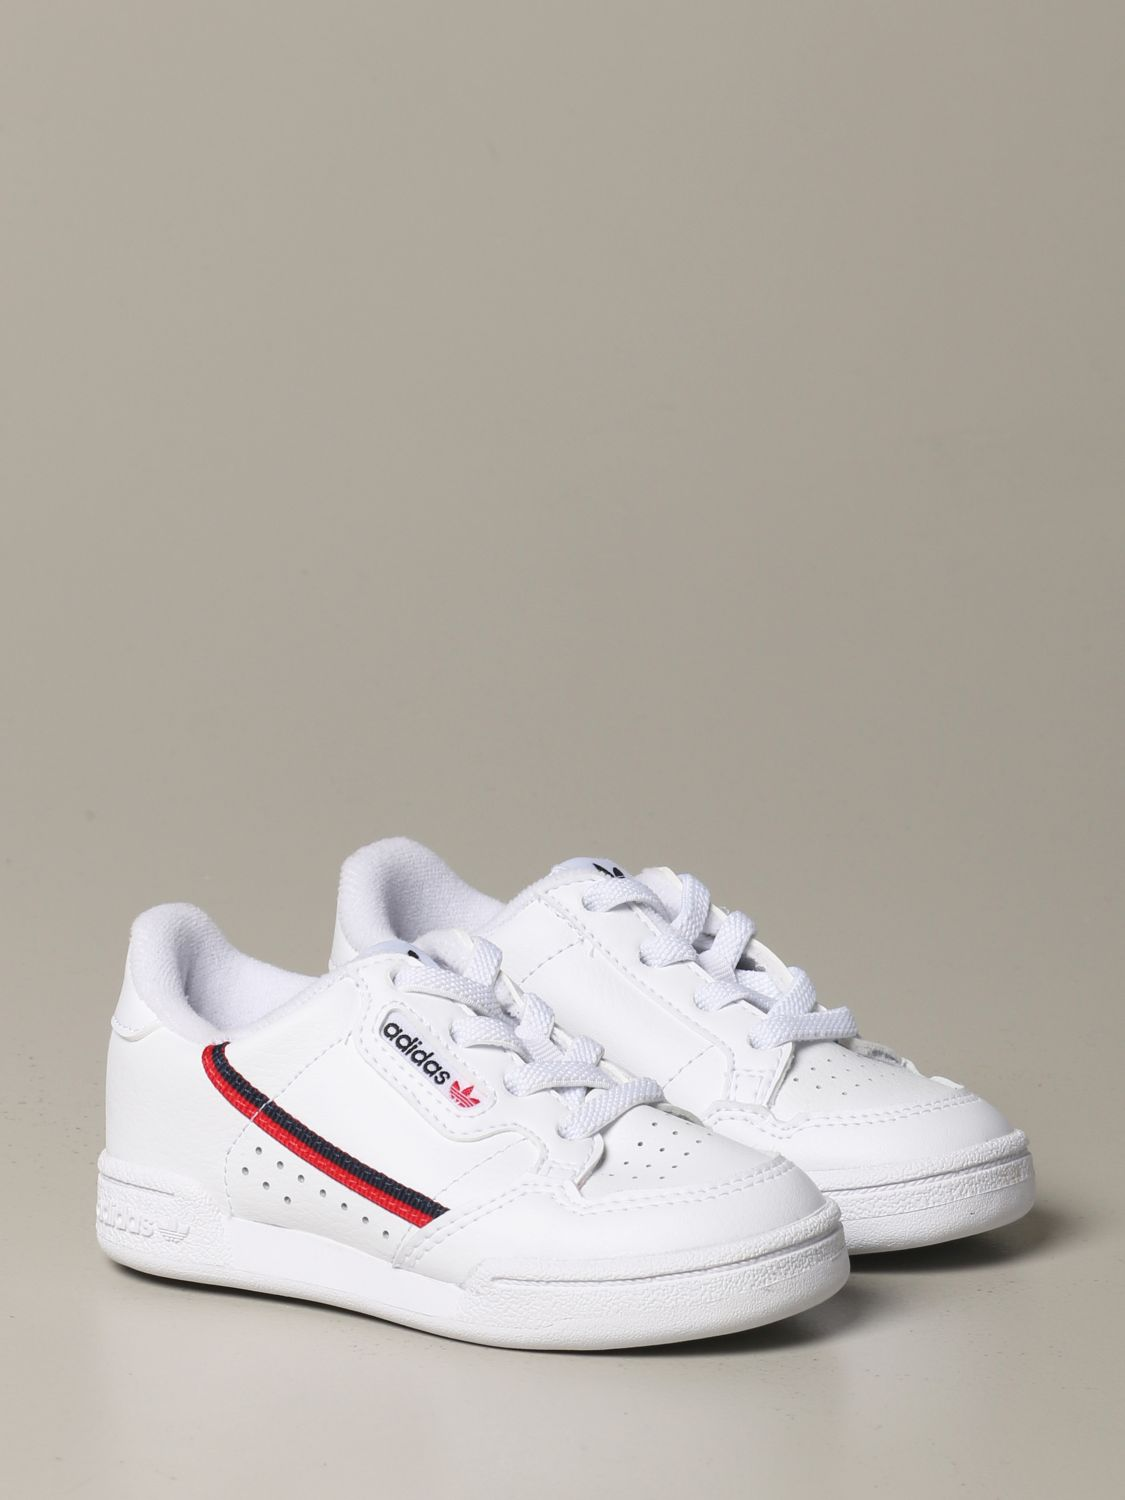 Shoes Adidas Originals: Continental 80 Adidas Originals leather sneakers white 2